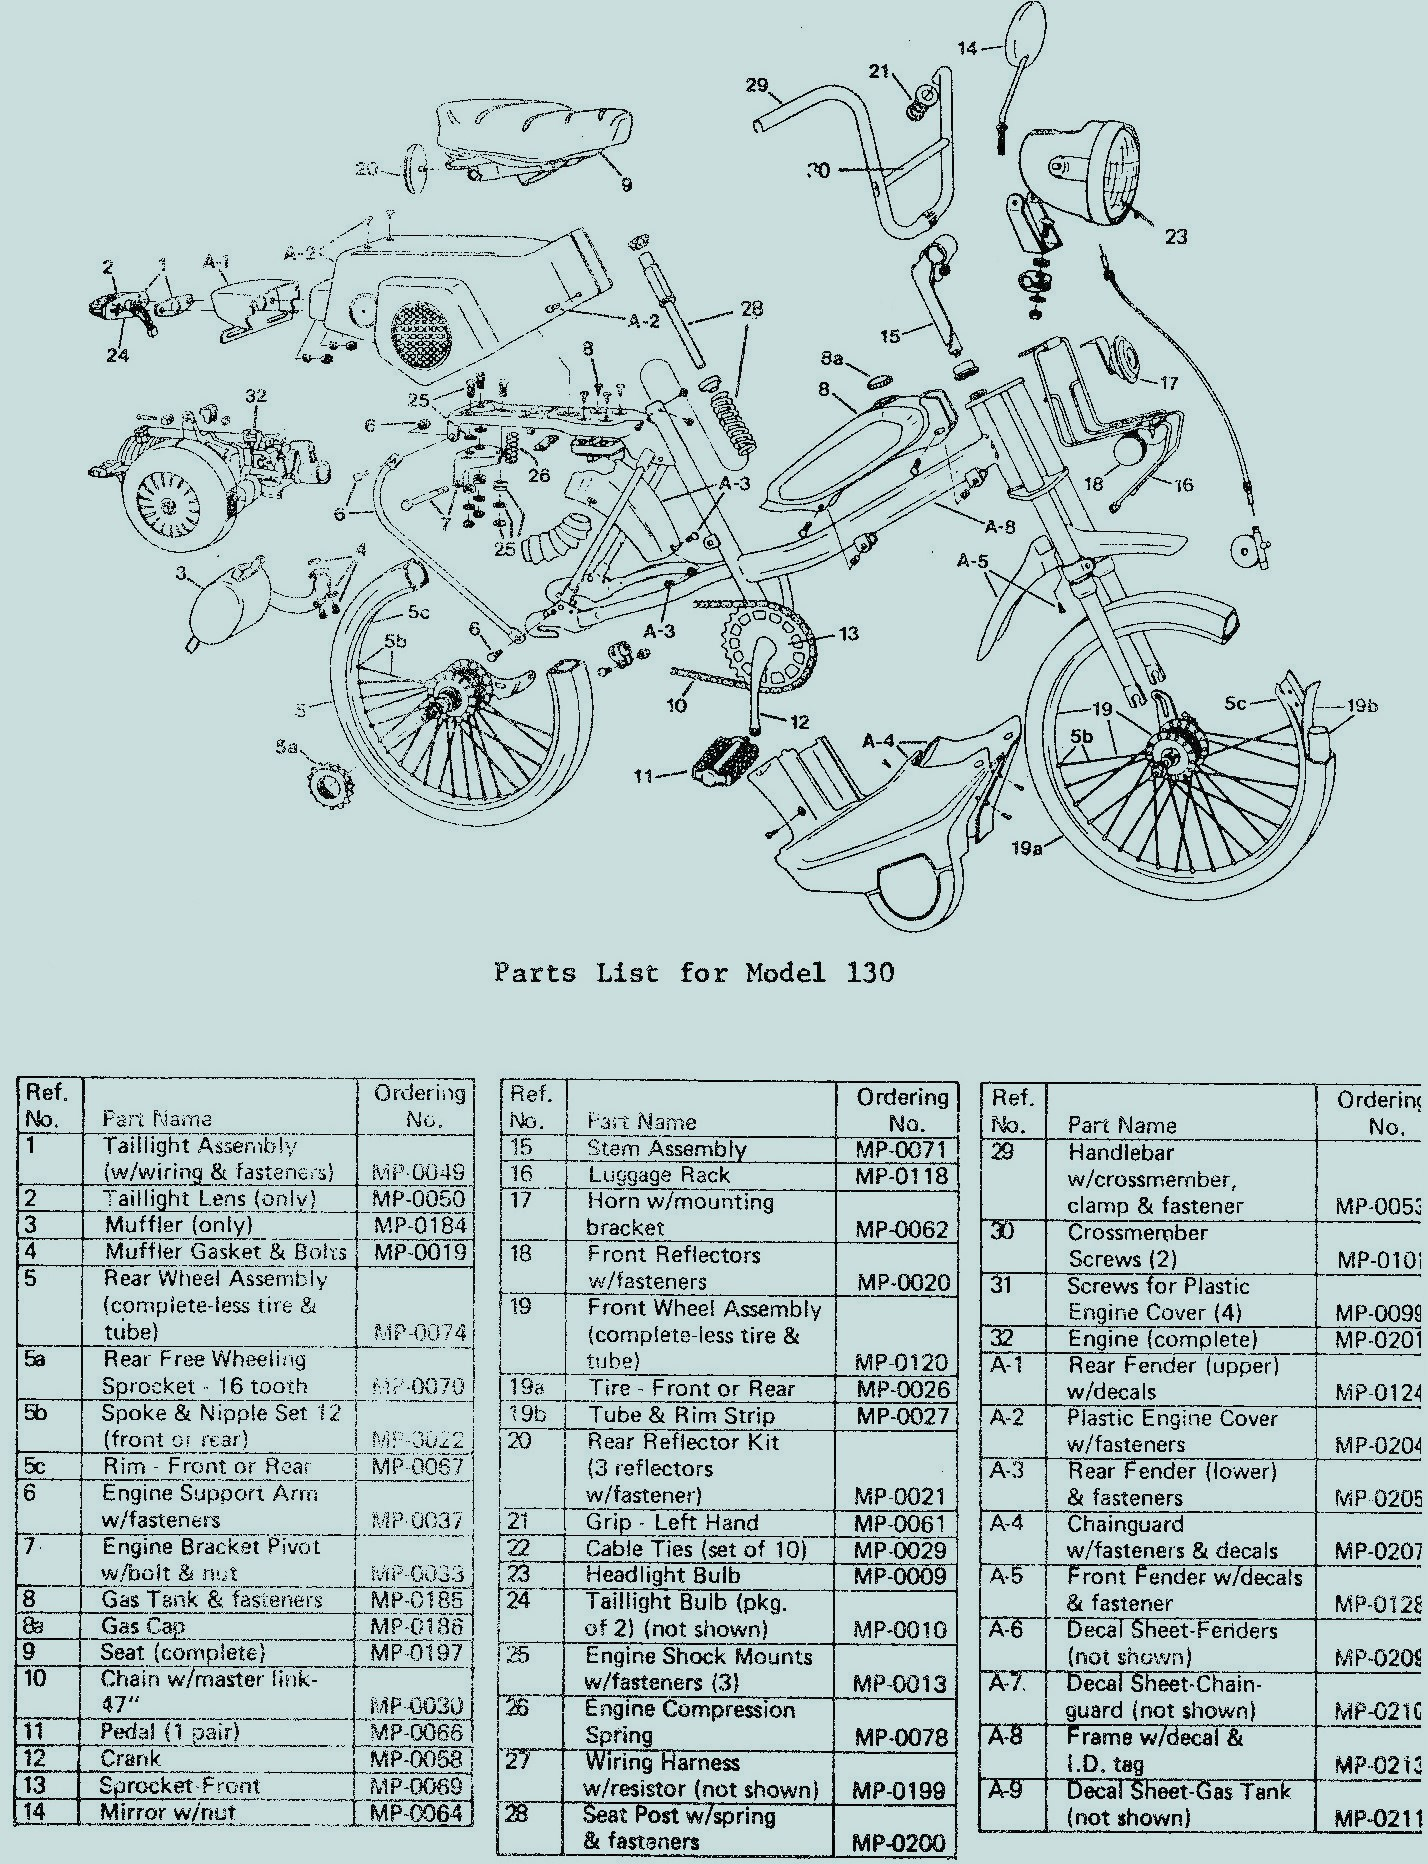 qmb139 engine diagram wiring diagram on the net Automotive Wiring Diagrams